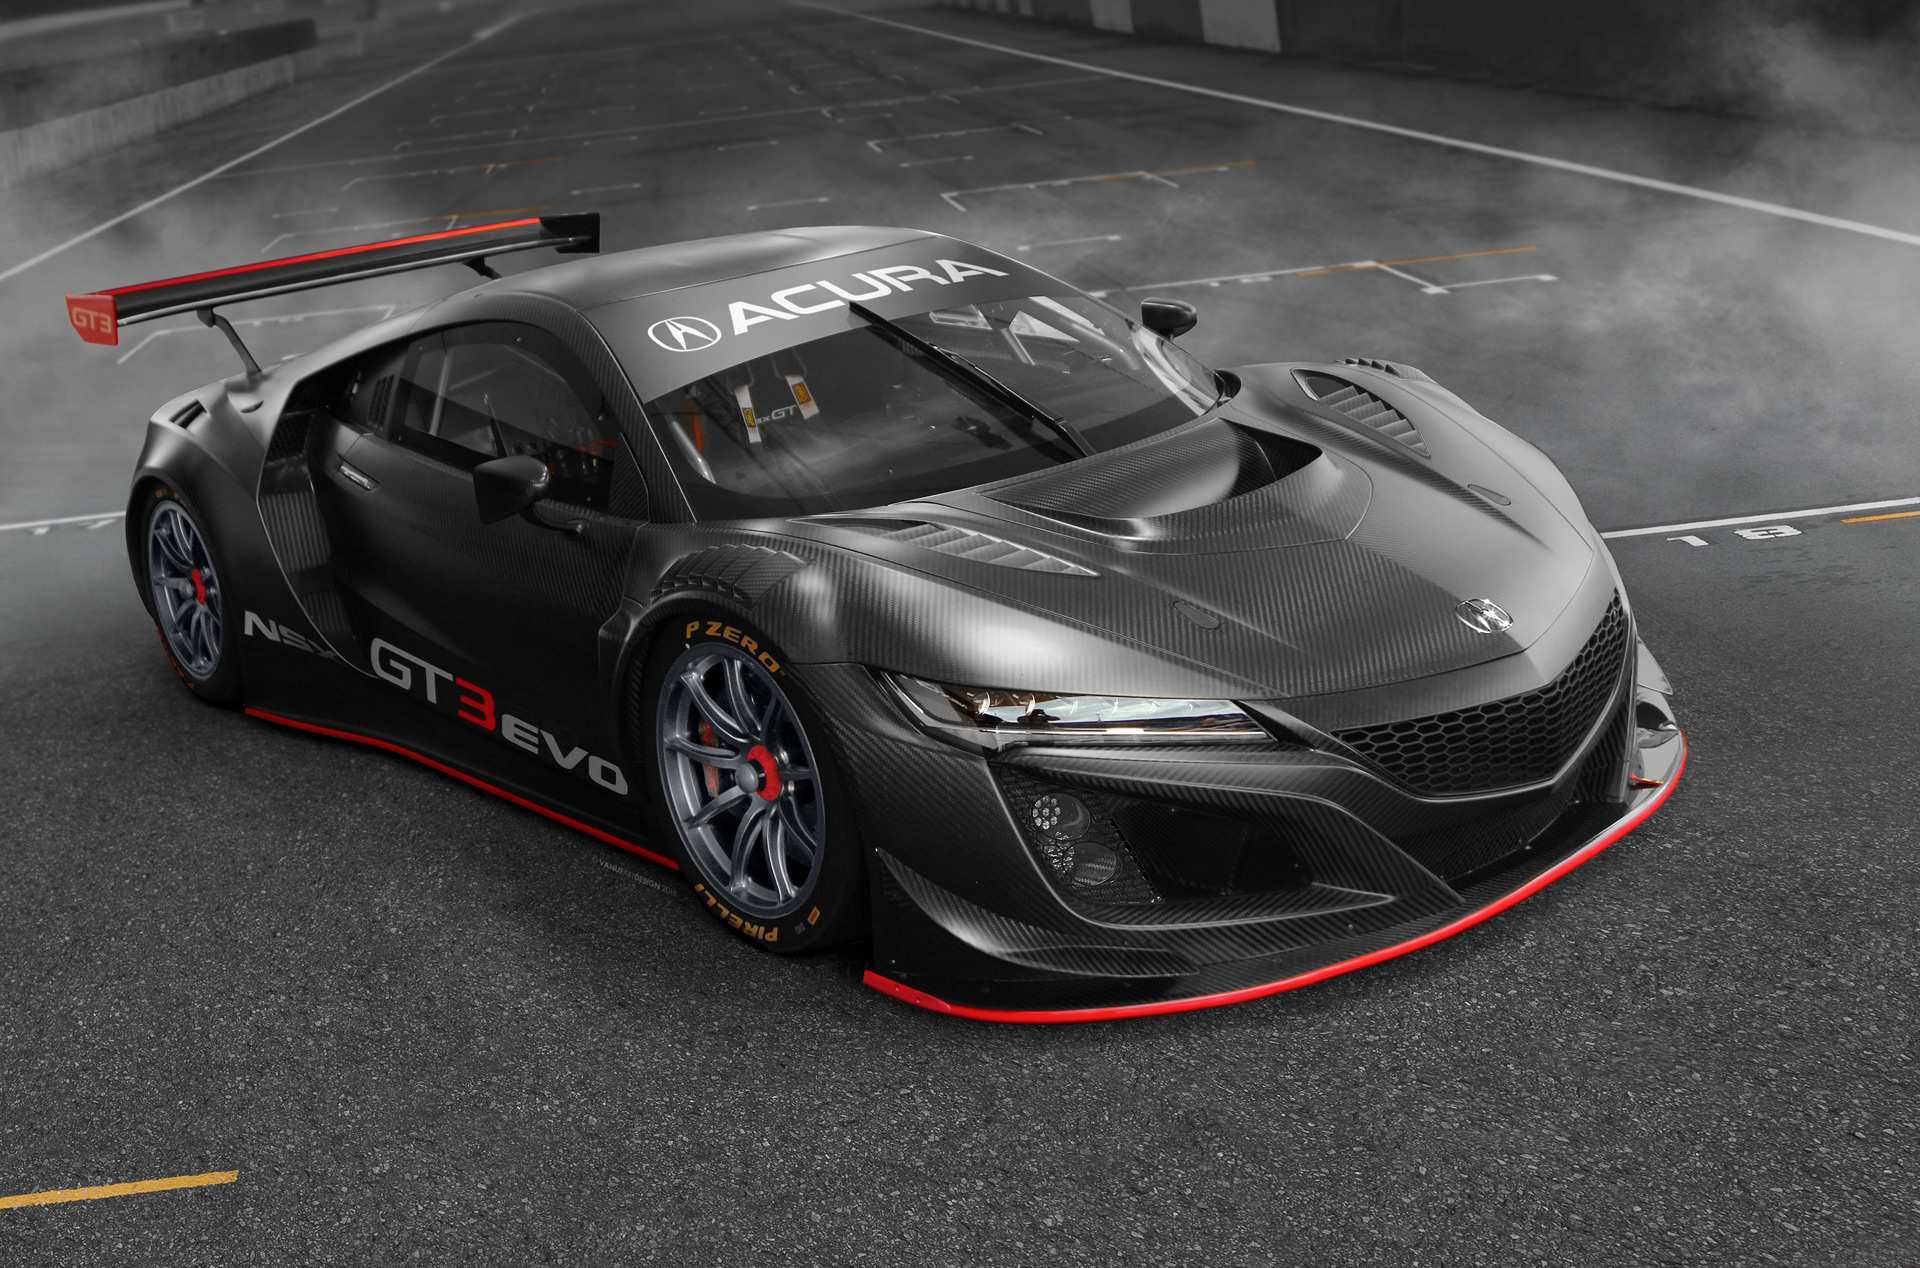 69 New 2019 Acura Nsx Type R Model